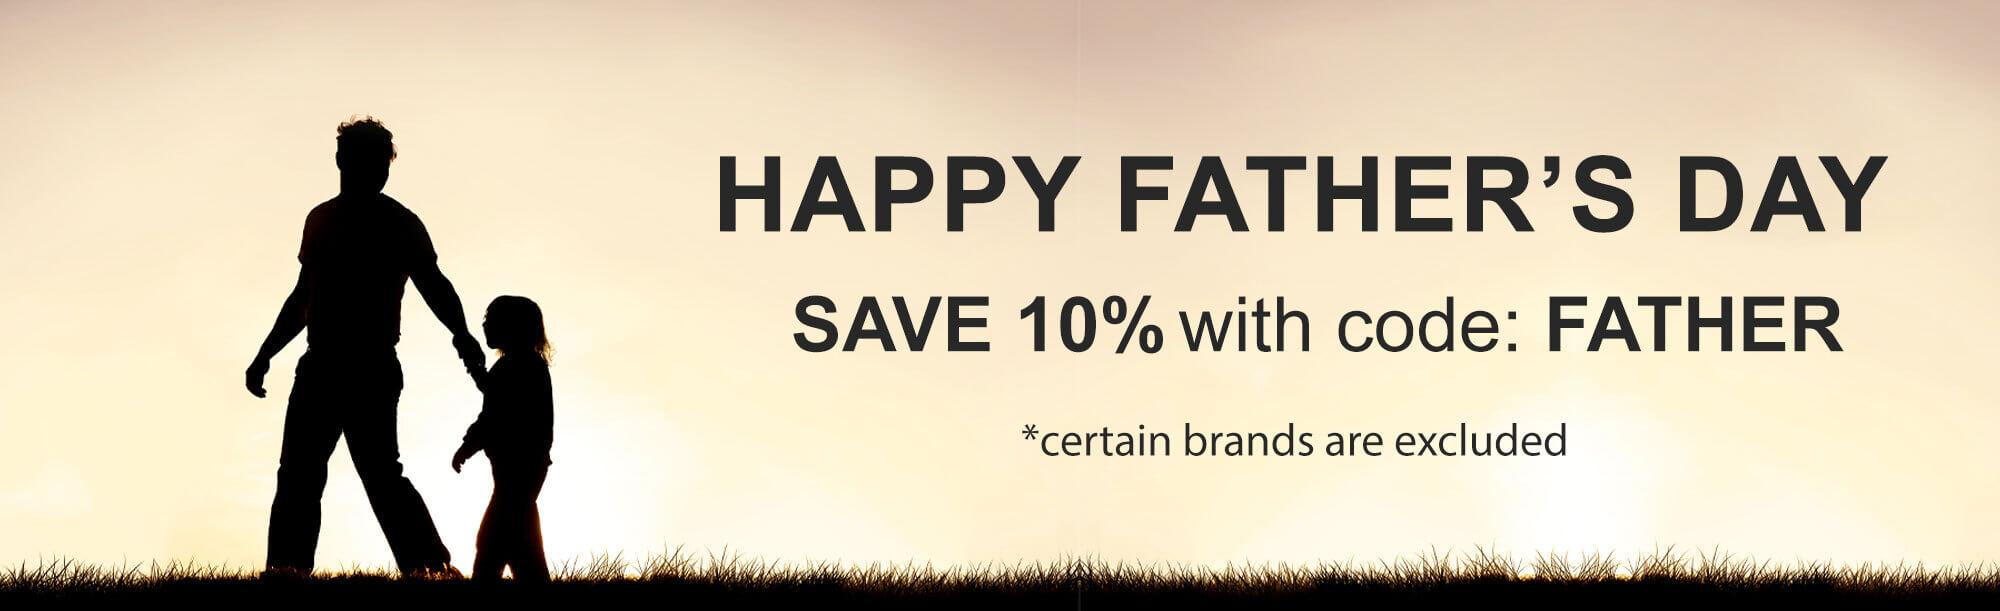 PatioLiving_Father_Day_2000x611_banner.jpg